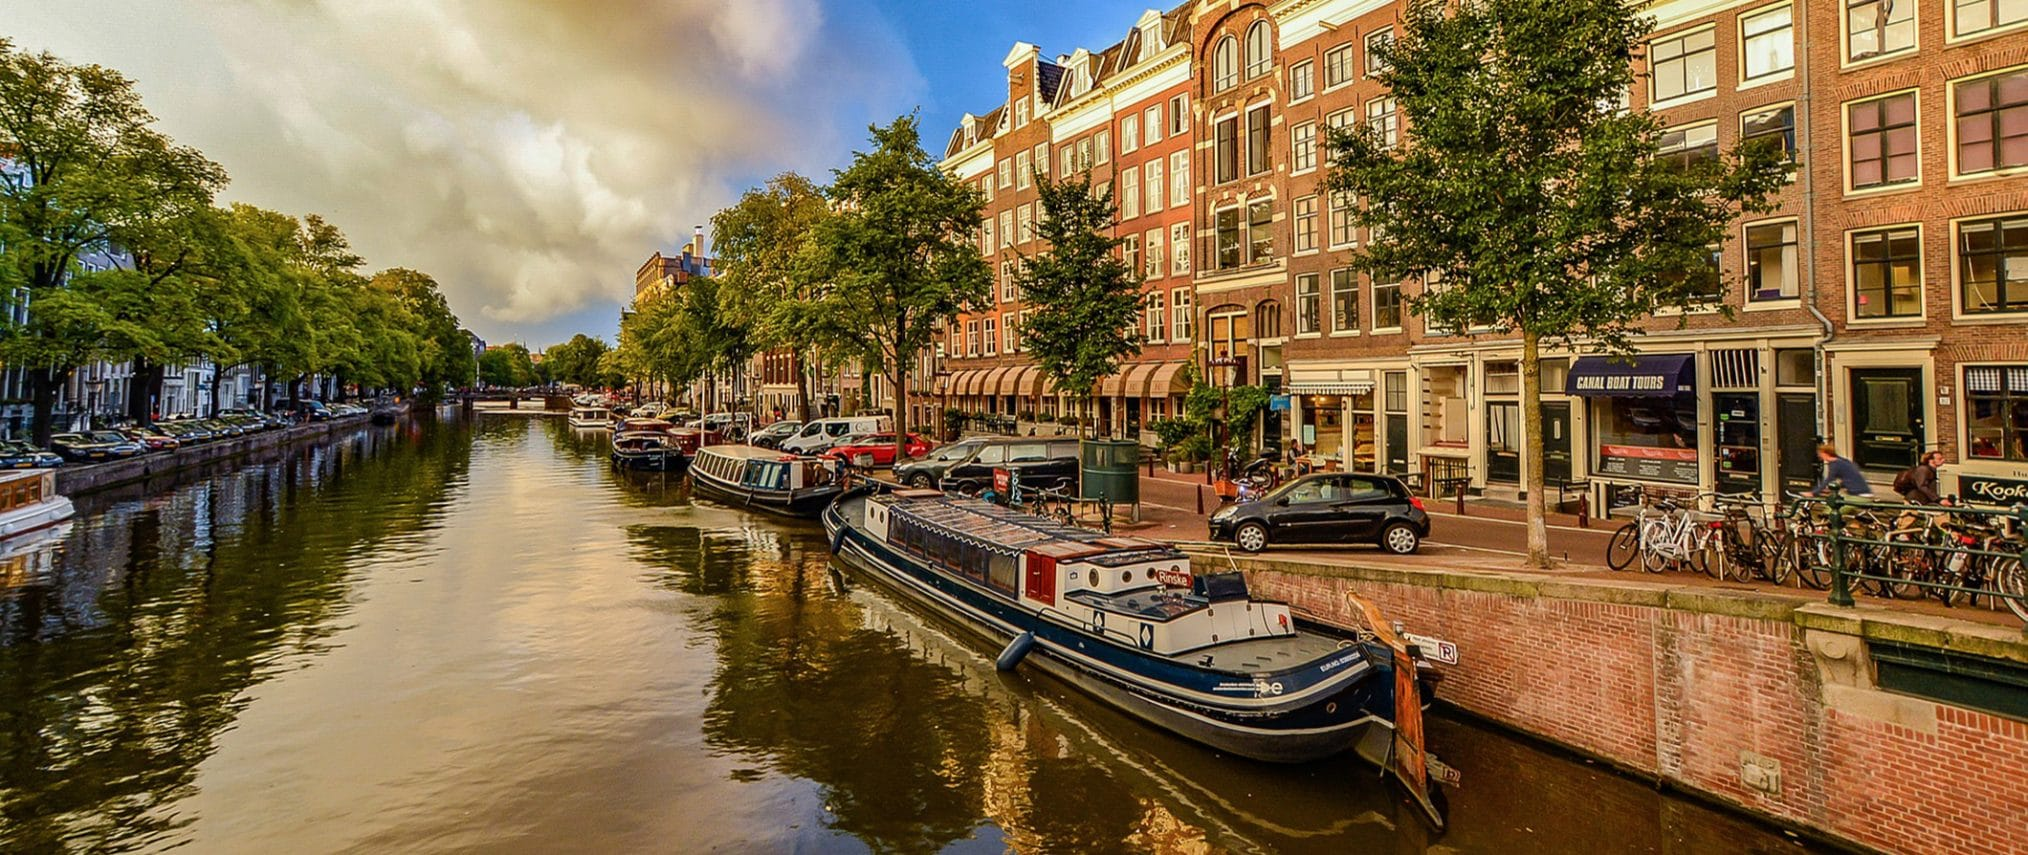 discover what is Amsterdam known for